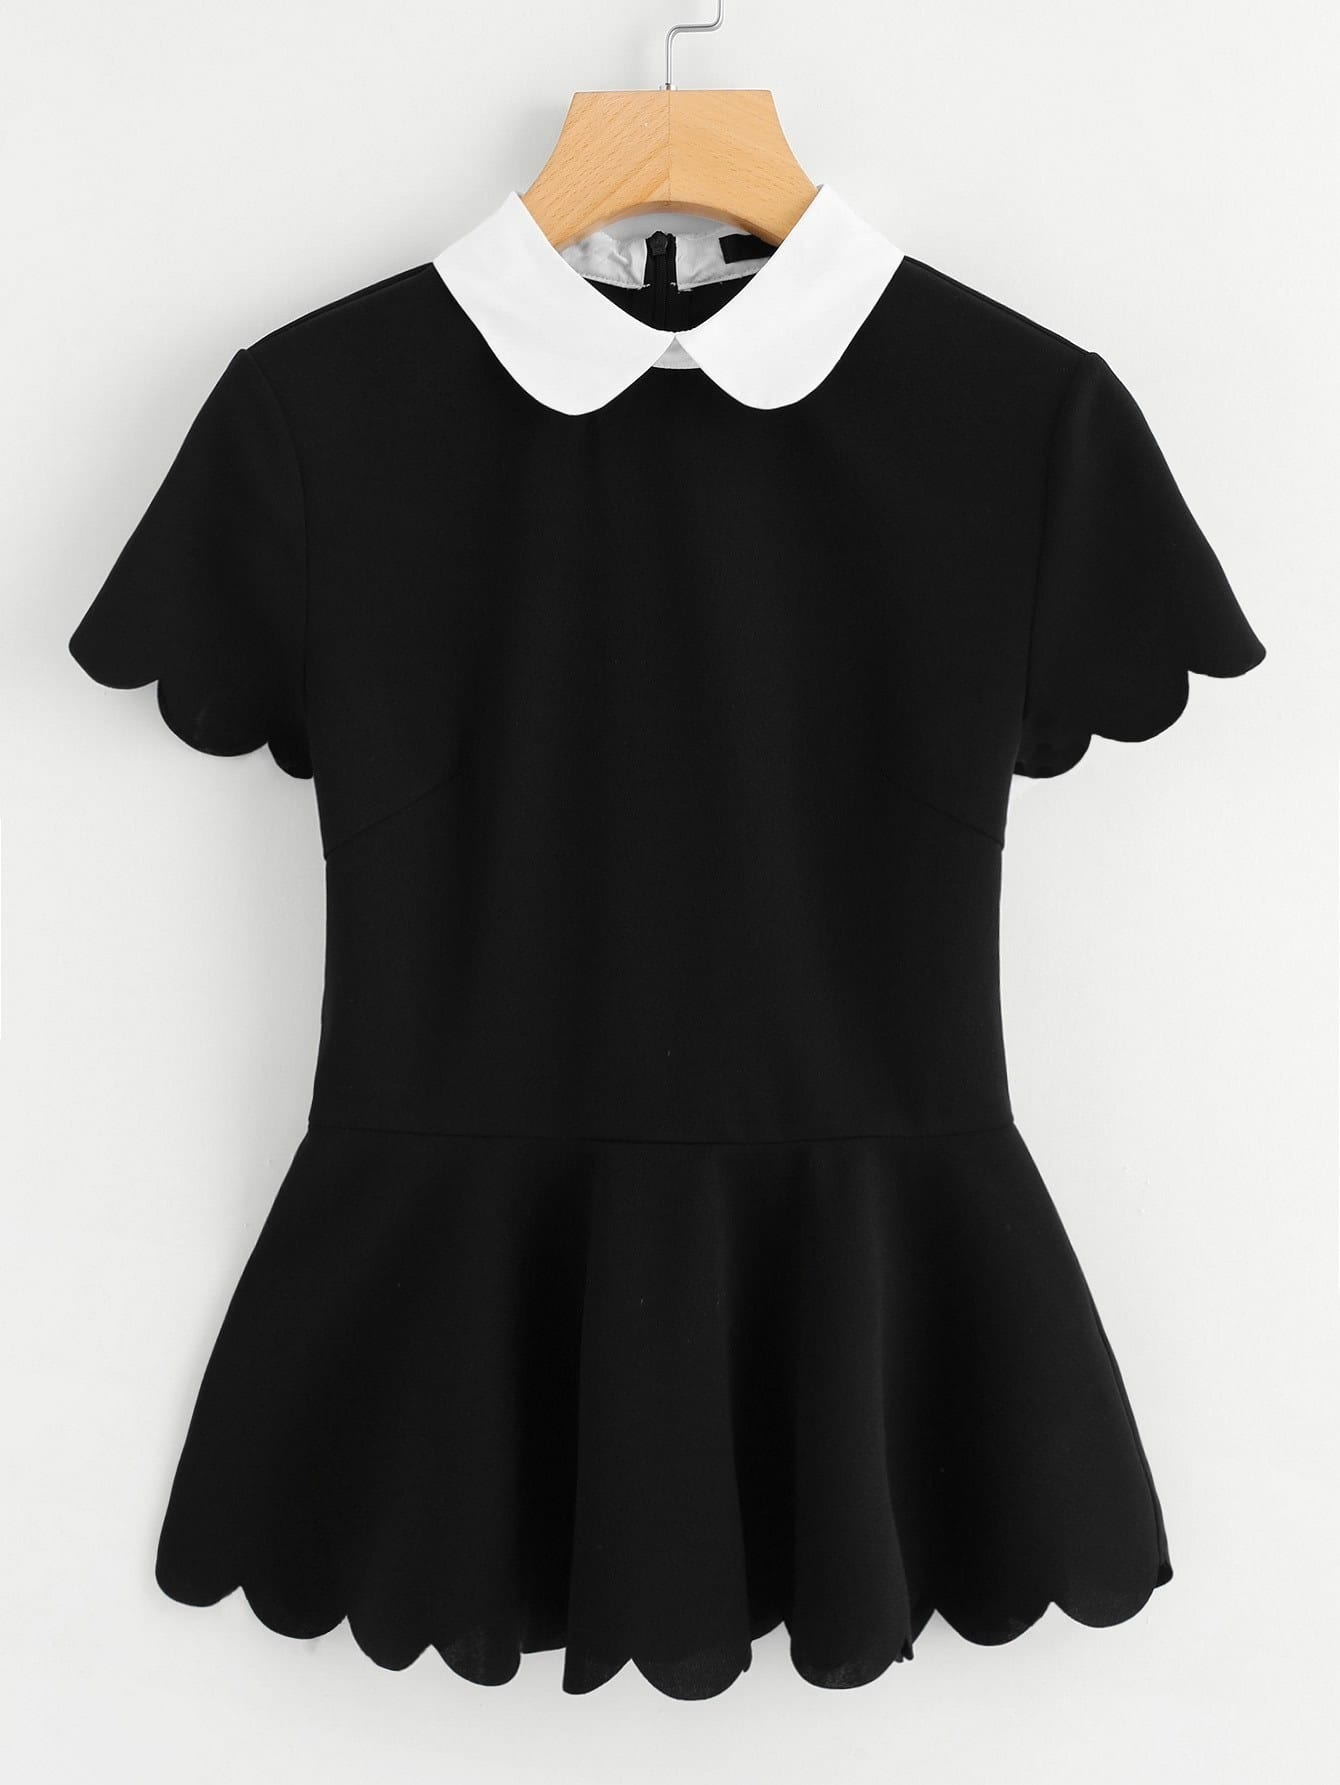 Contrast Peter Pan Collar Scallop Peplum Top contrast collar grid peplum top